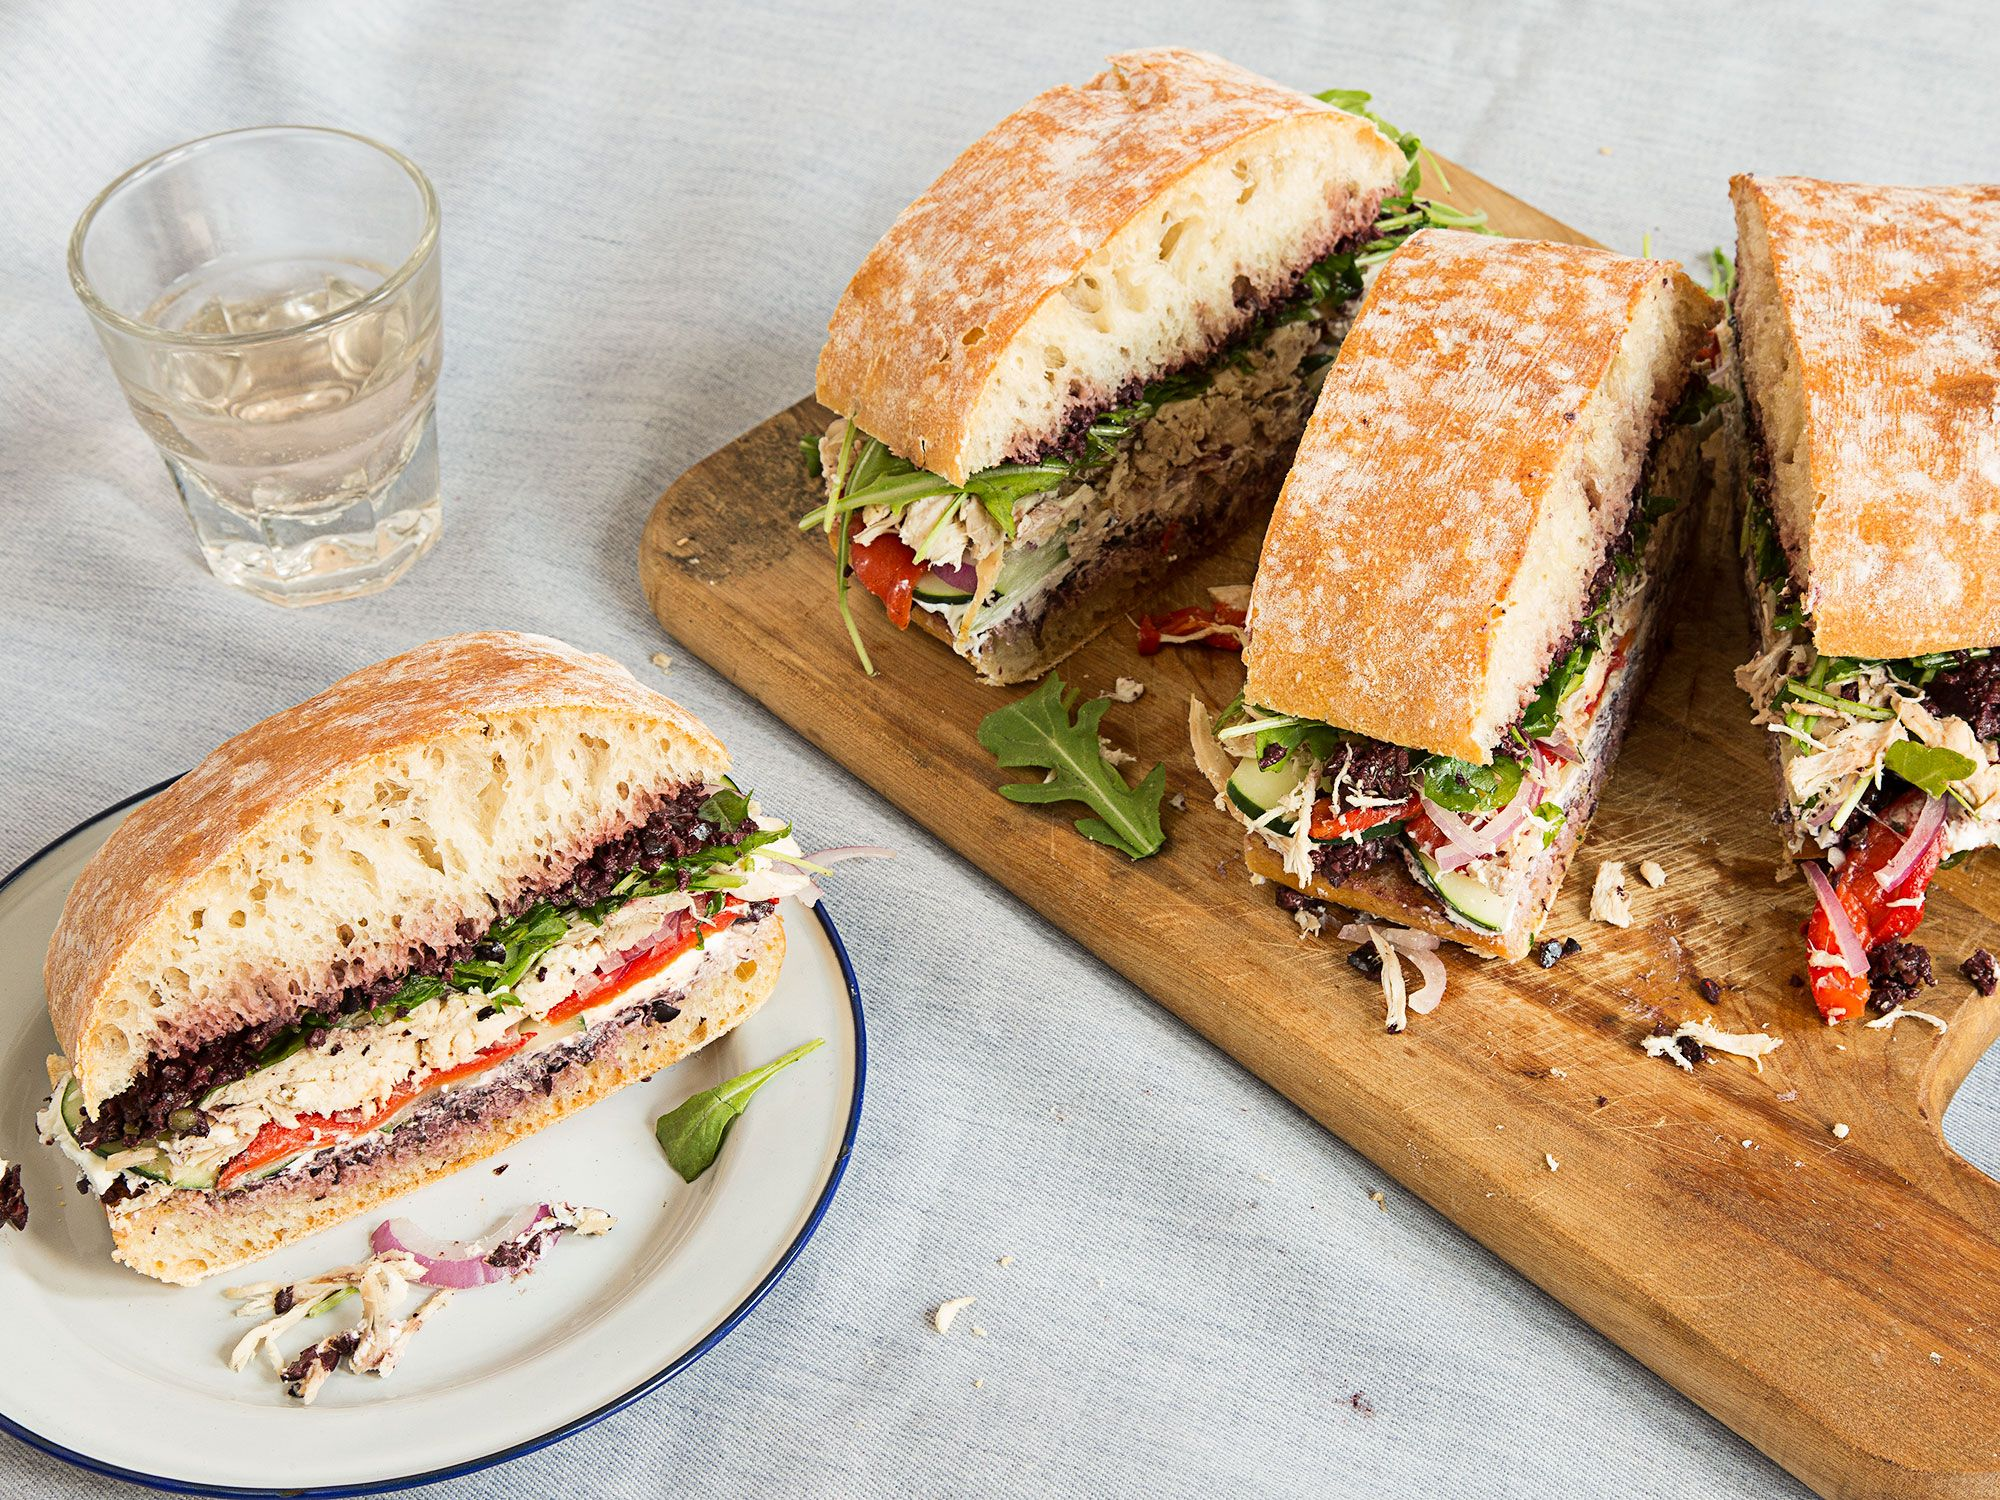 This hearty twist on the classic Provençal pressed sandwich pan bagnat combines black olive tapenade, goat cheese, roasted chicken, and thinly sliced vegetables.